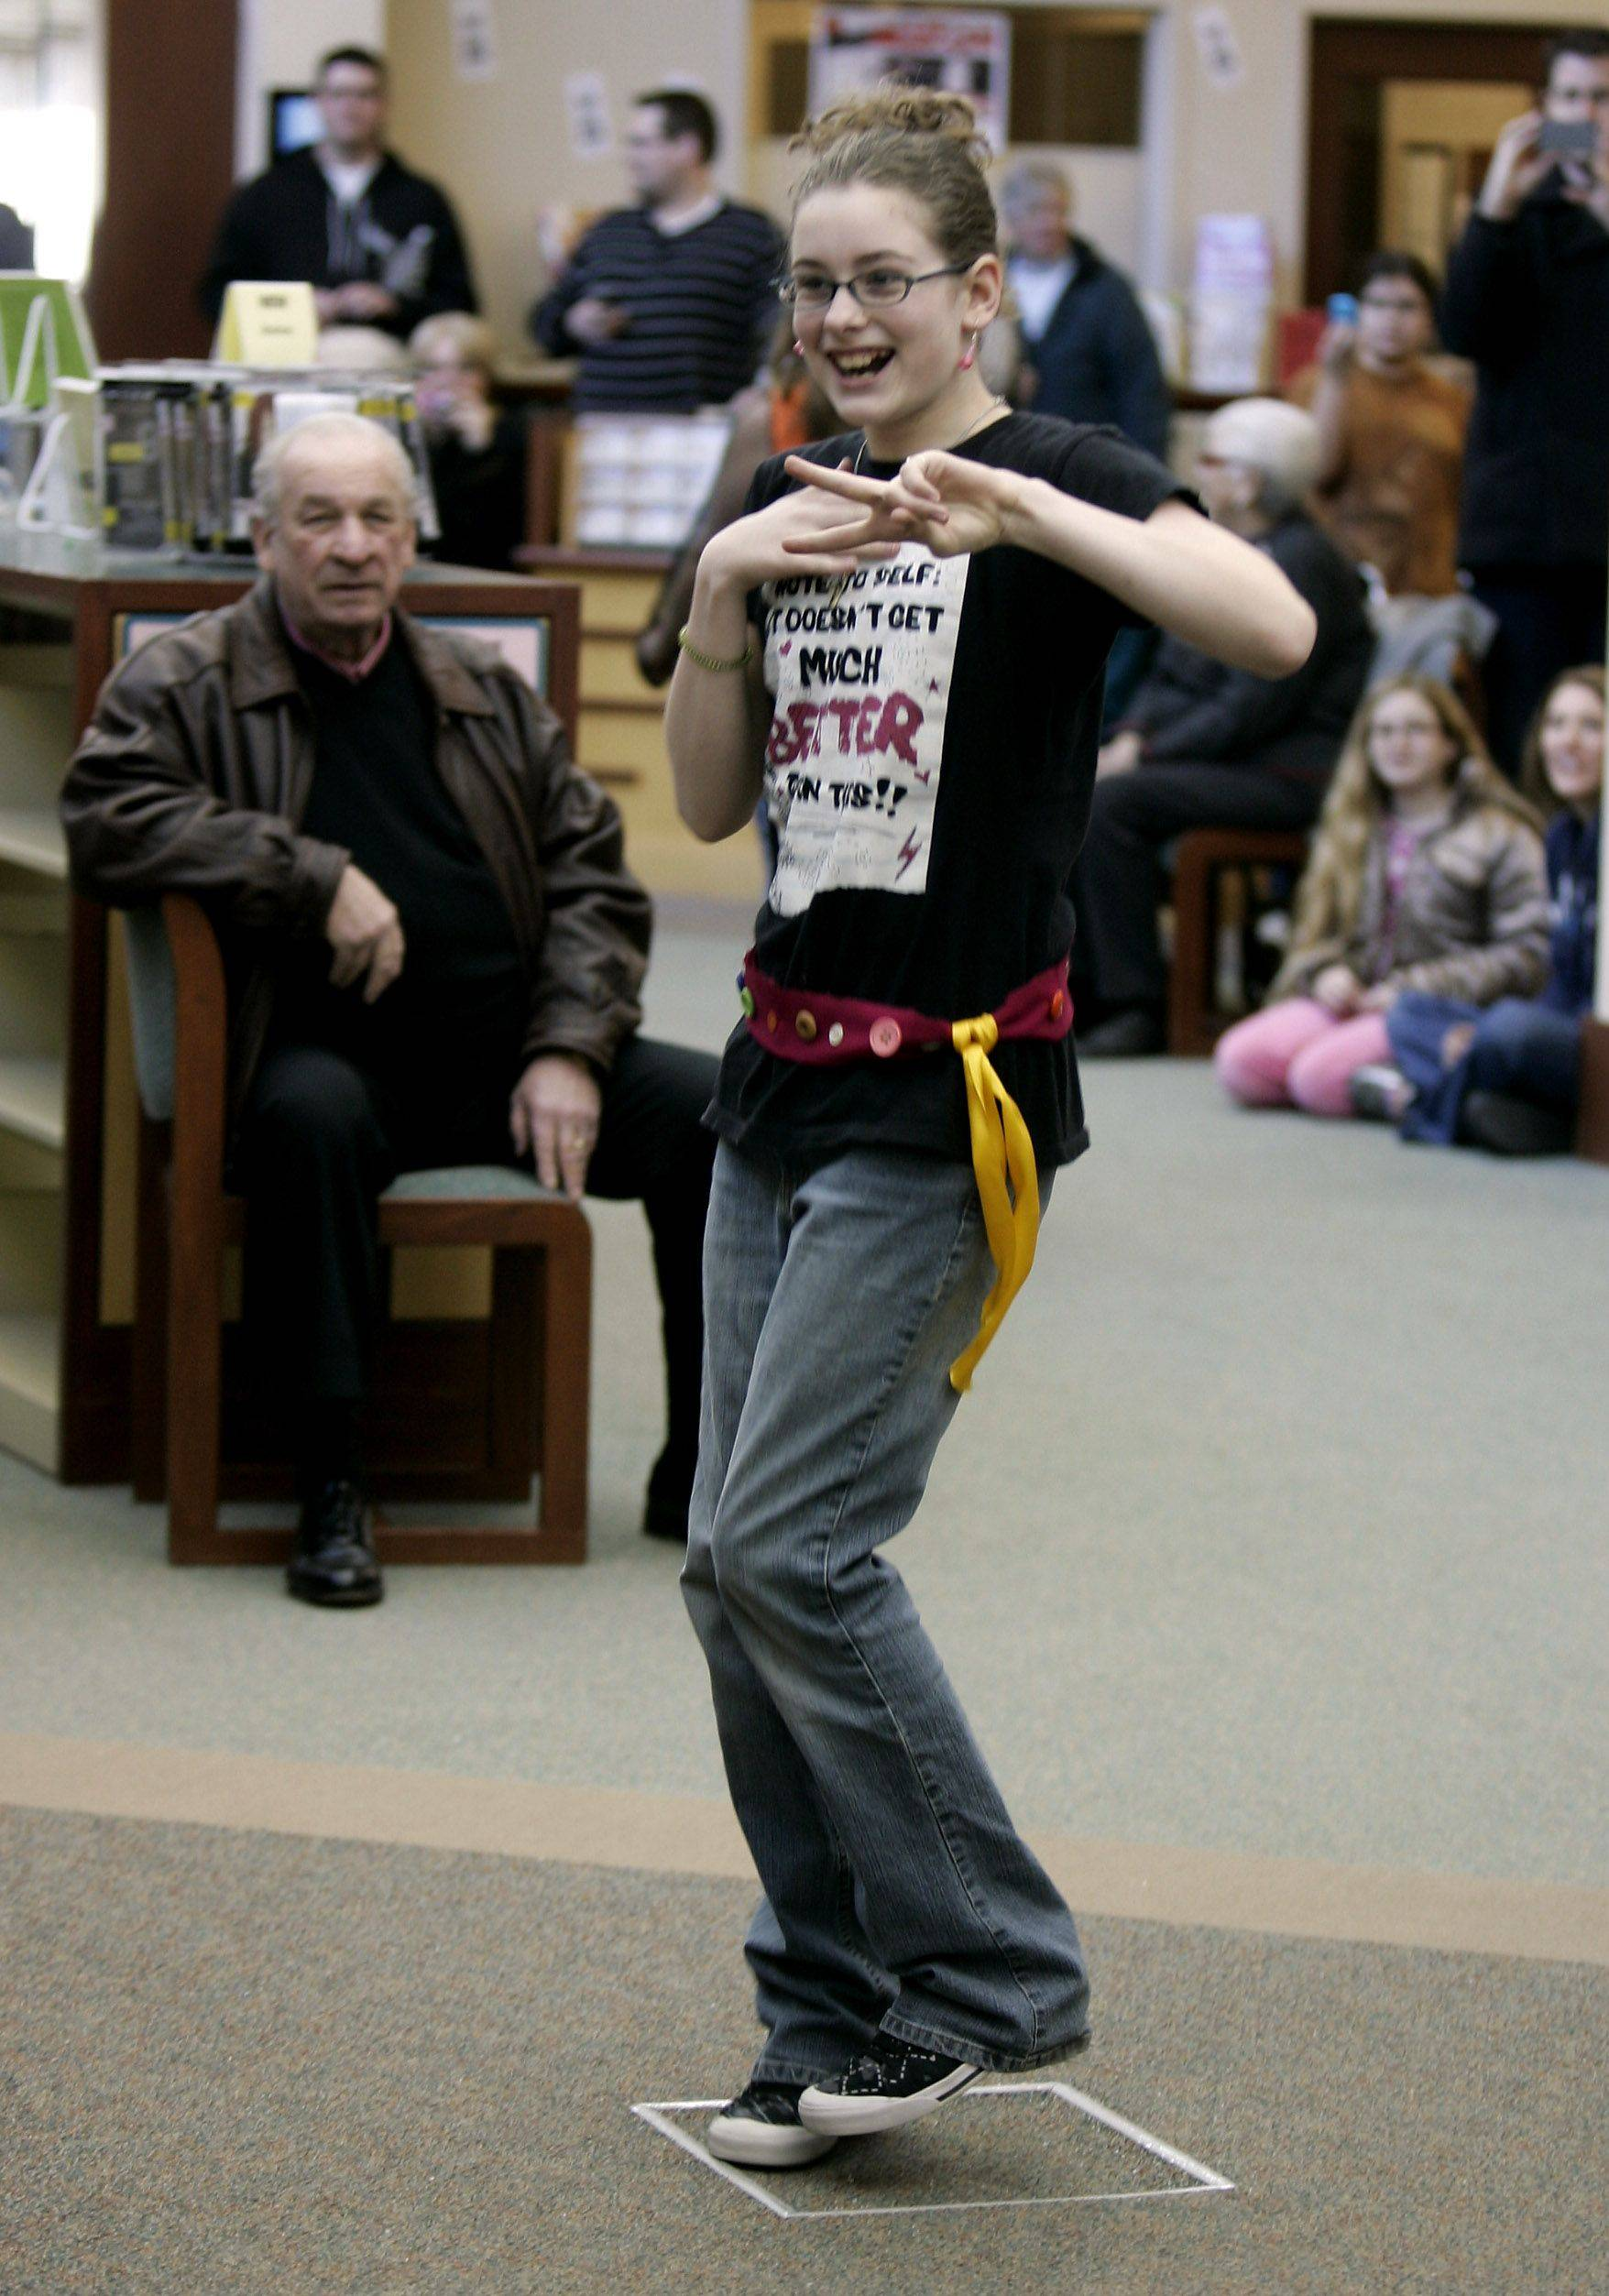 Ellyn Hanna, 12, of Lake Villa shows off her clothes design during the Project Library Fashion Design Challenge Sunday.